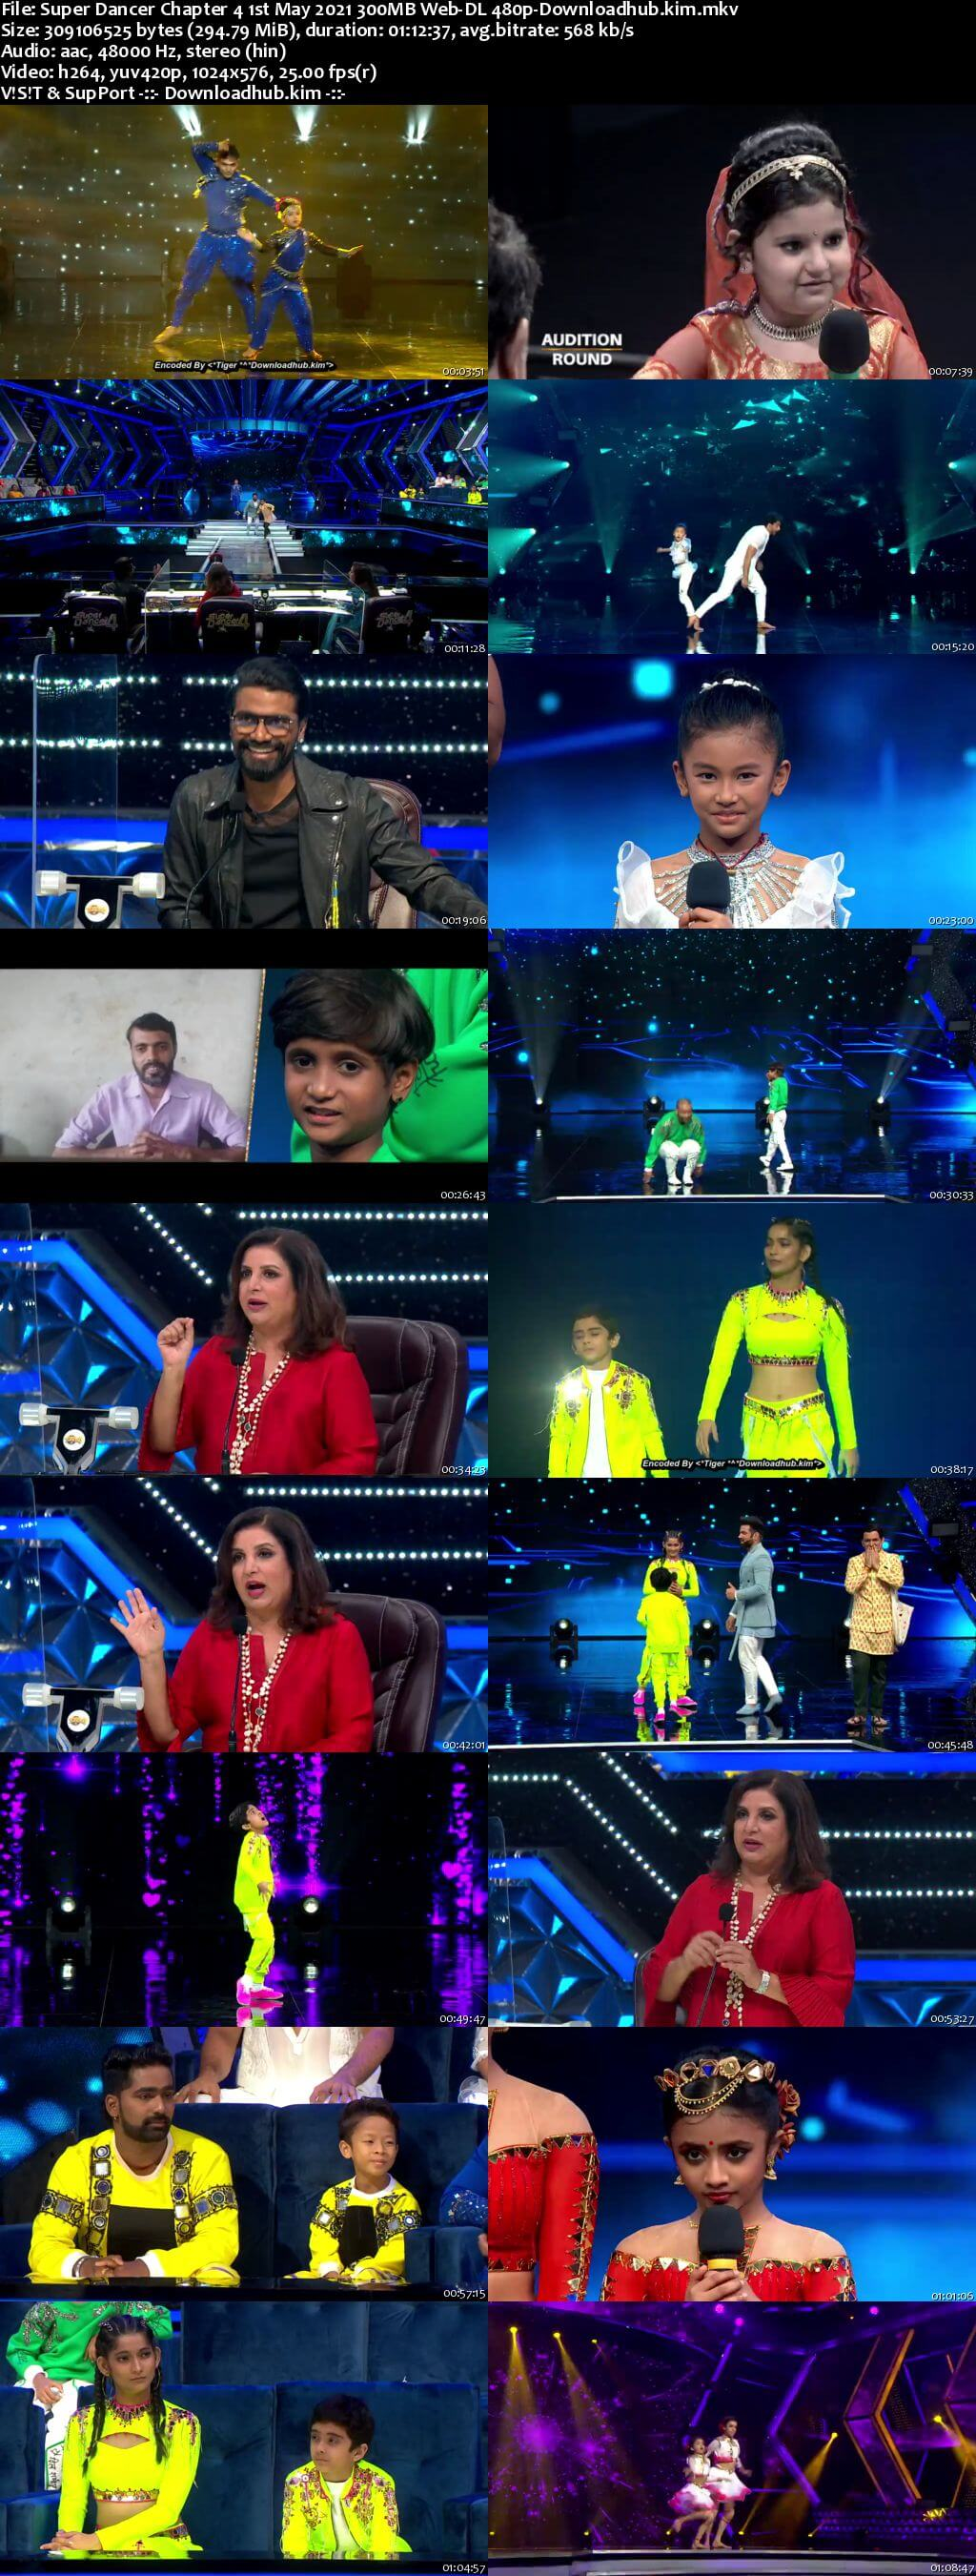 Super Dancer Chapter 4 1st May 2021 300MB Web-DL 480p